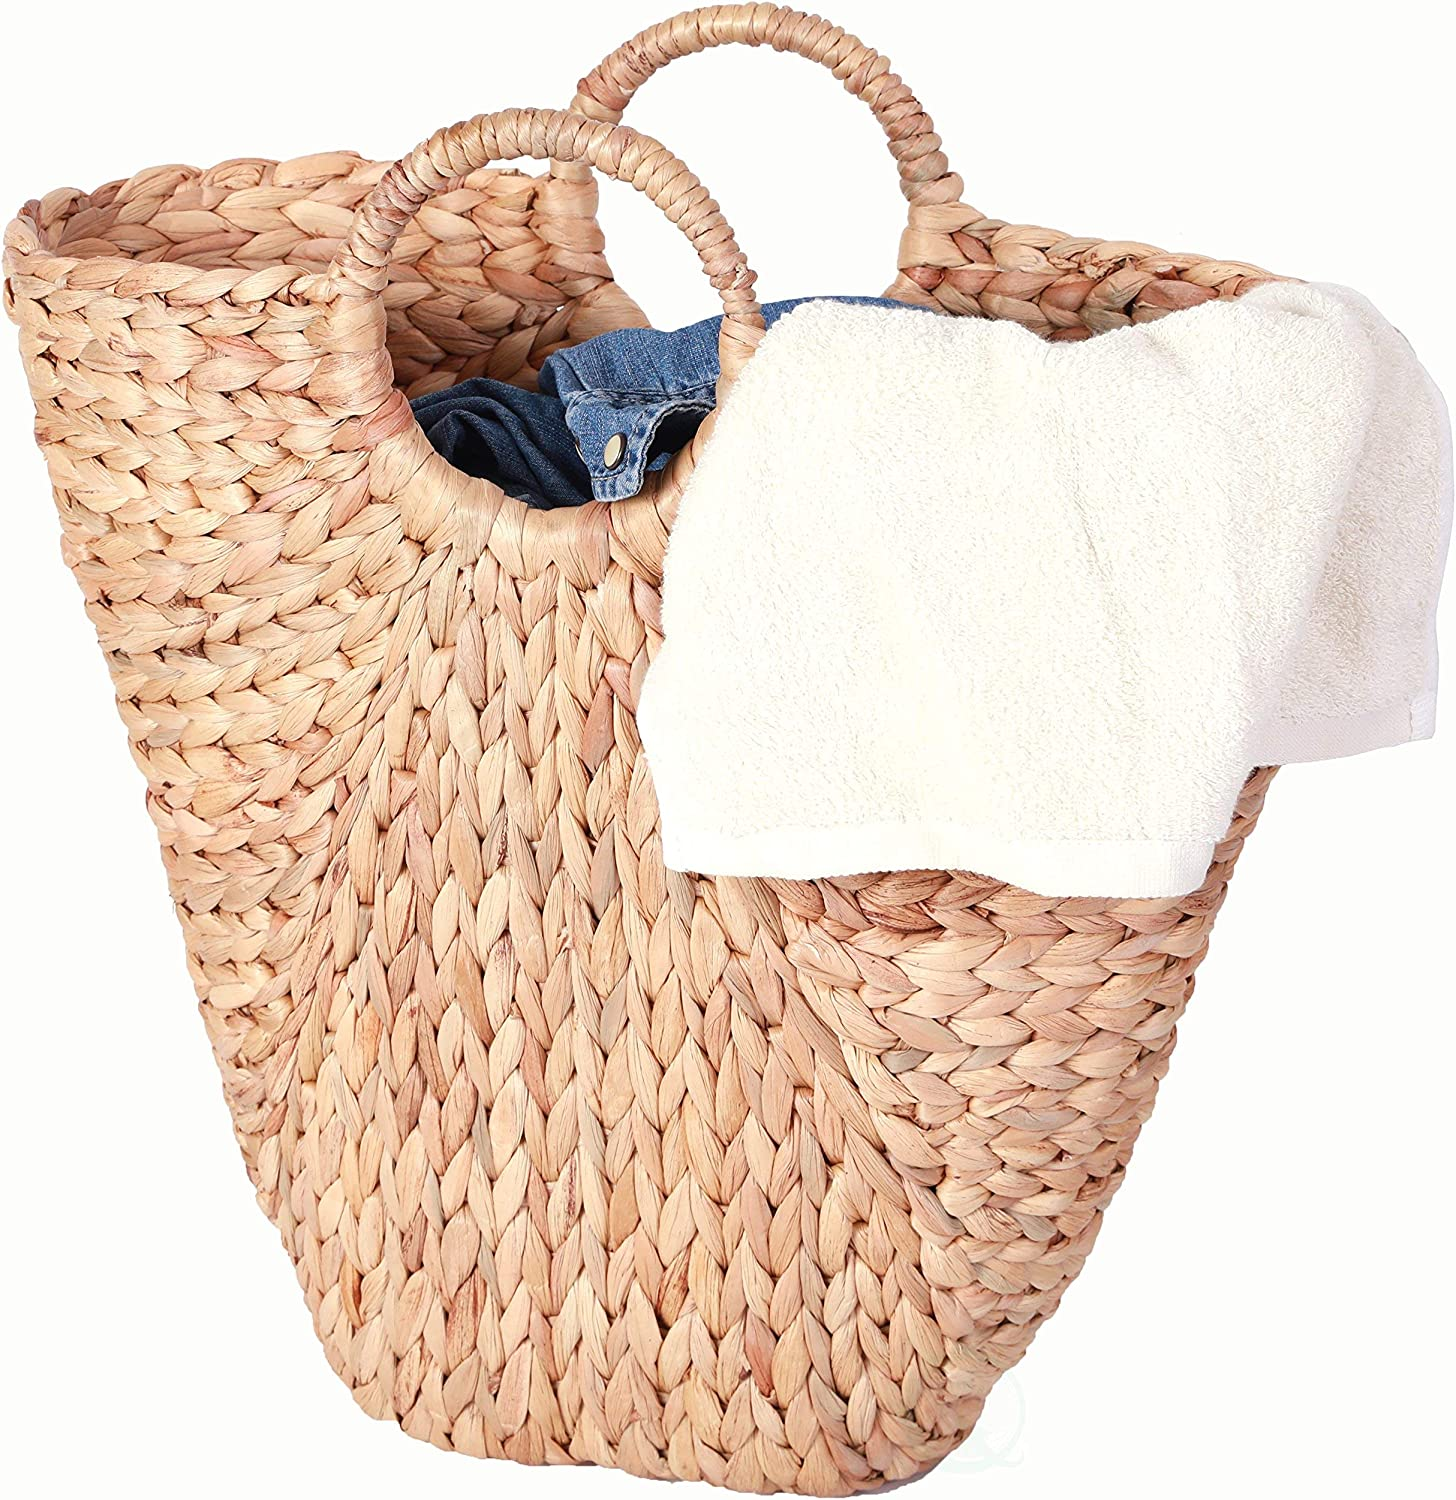 "Vintiquewise QI003352 18"" Natural Handwoven Water Hyacinth Storage Laundry Basket/Handbag"